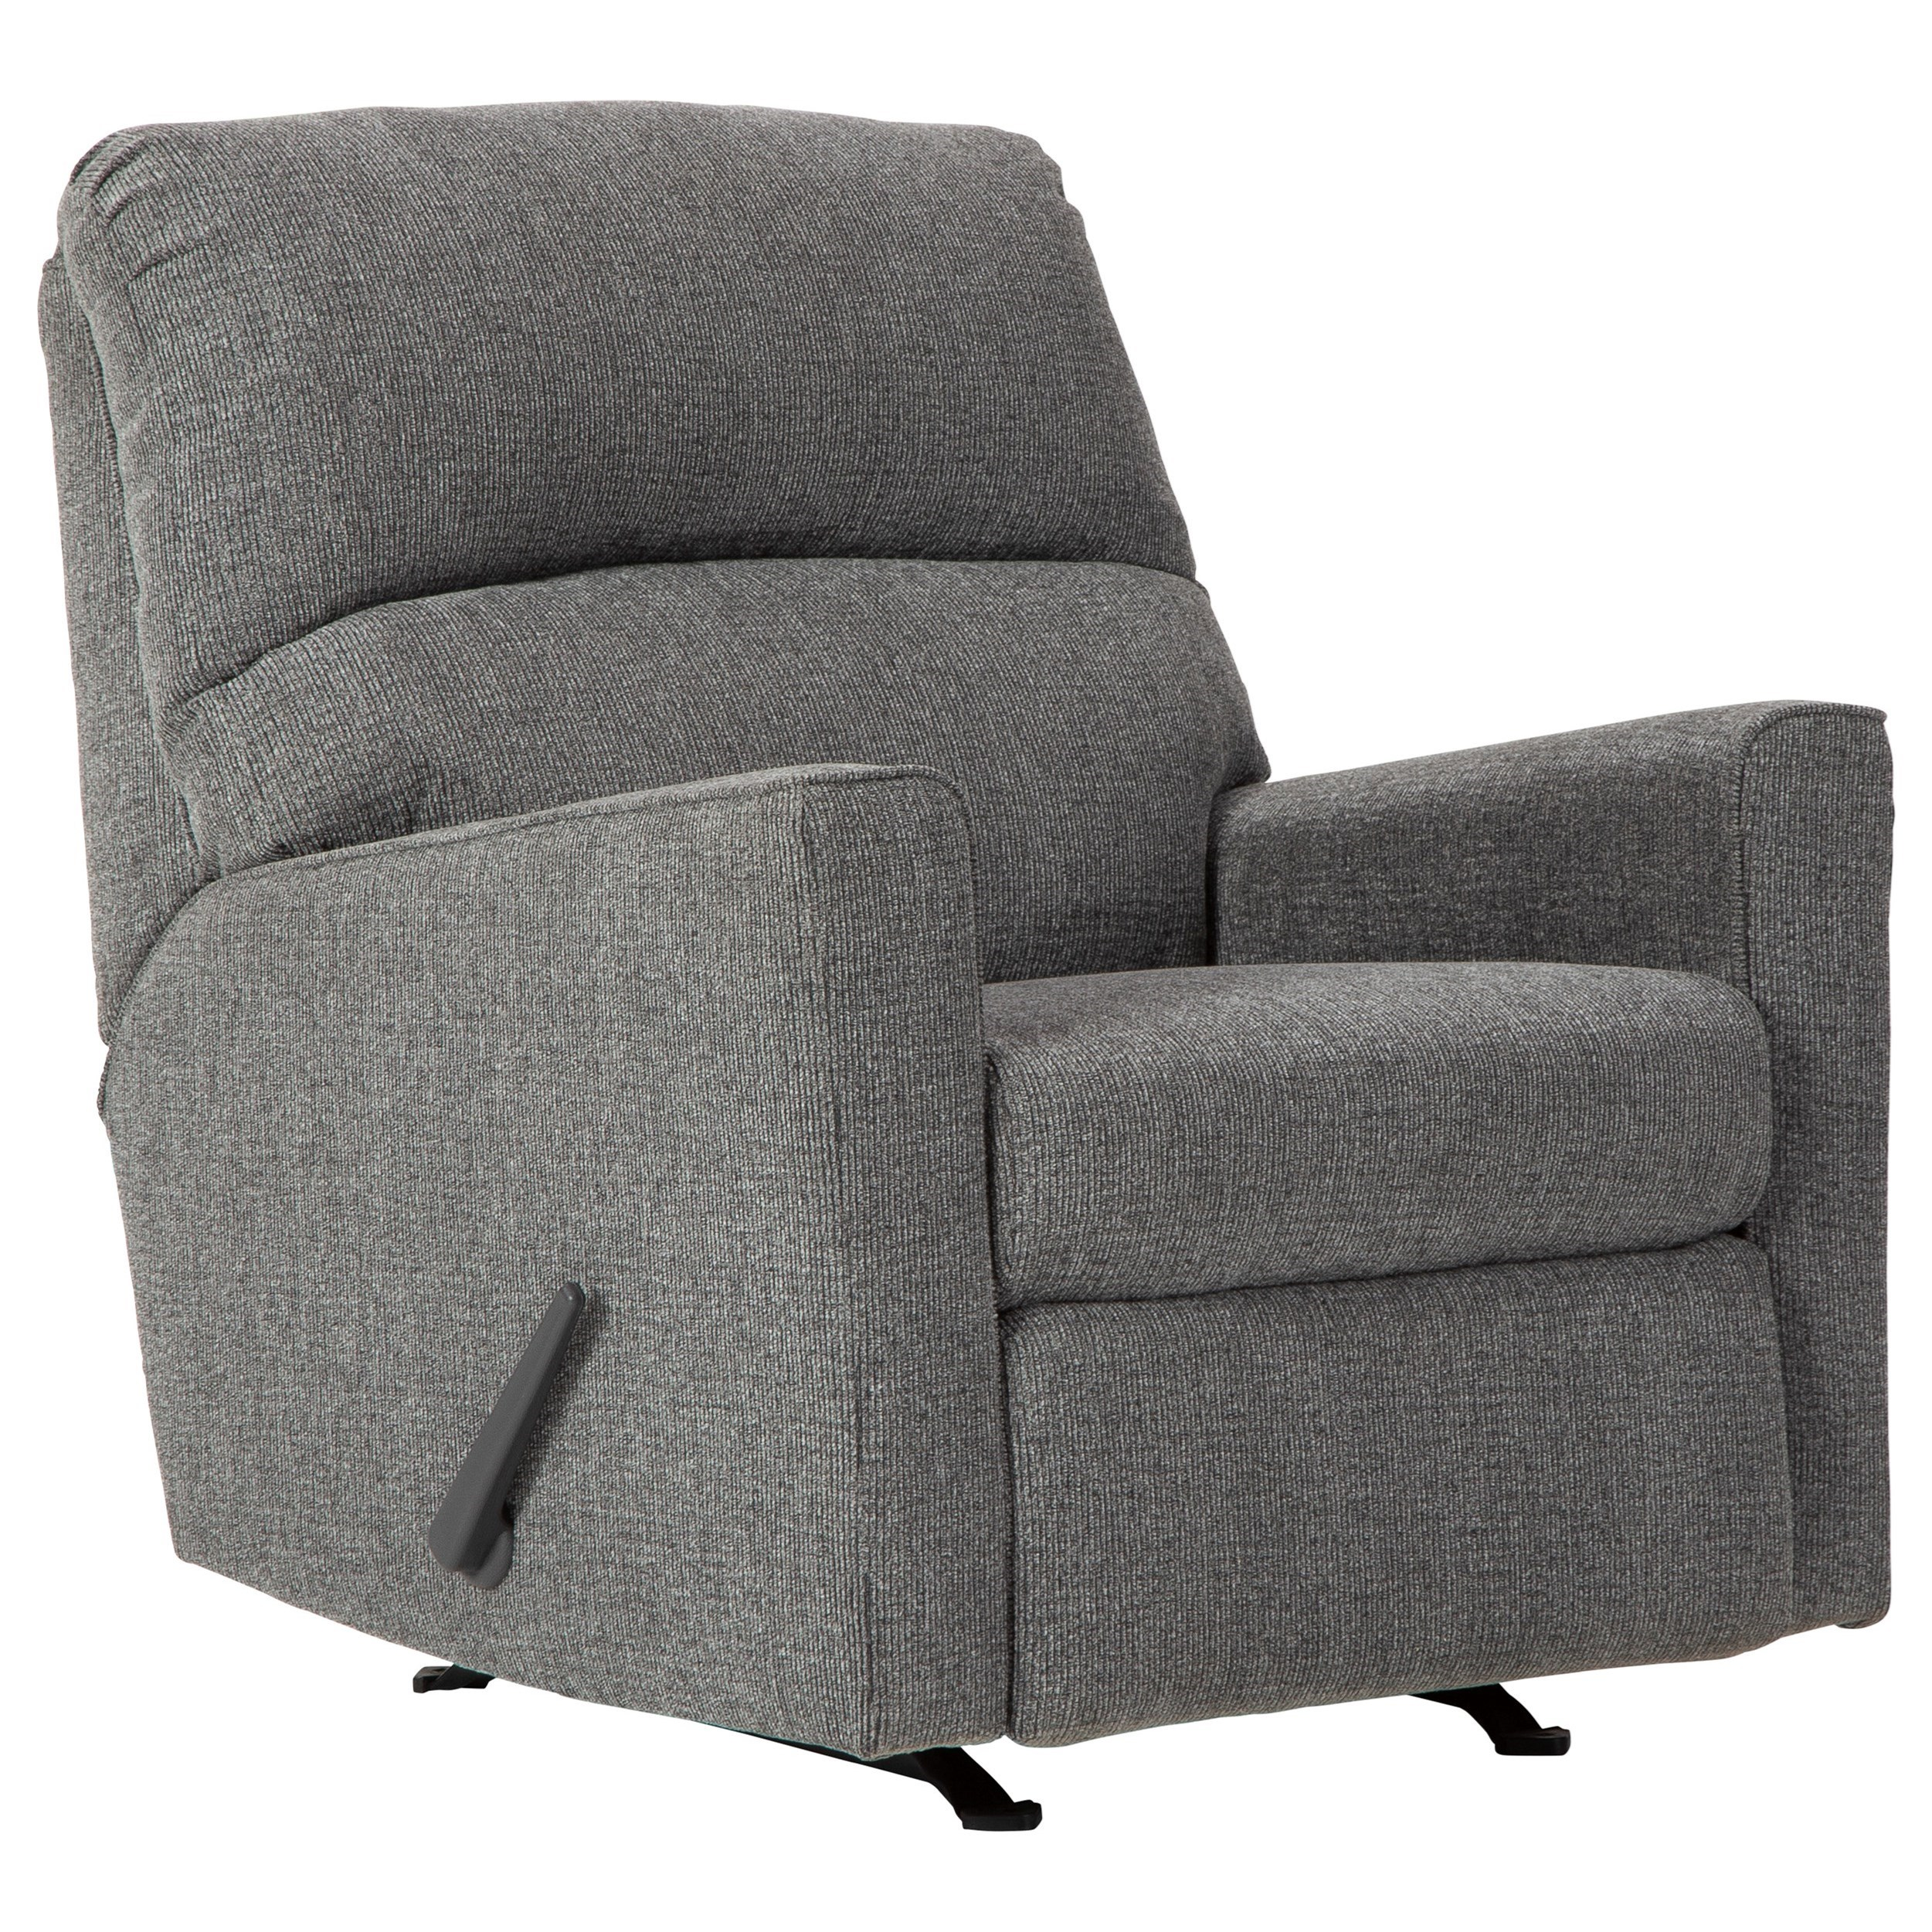 Dalhart Rocker Recliner by Benchcraft at Beds N Stuff